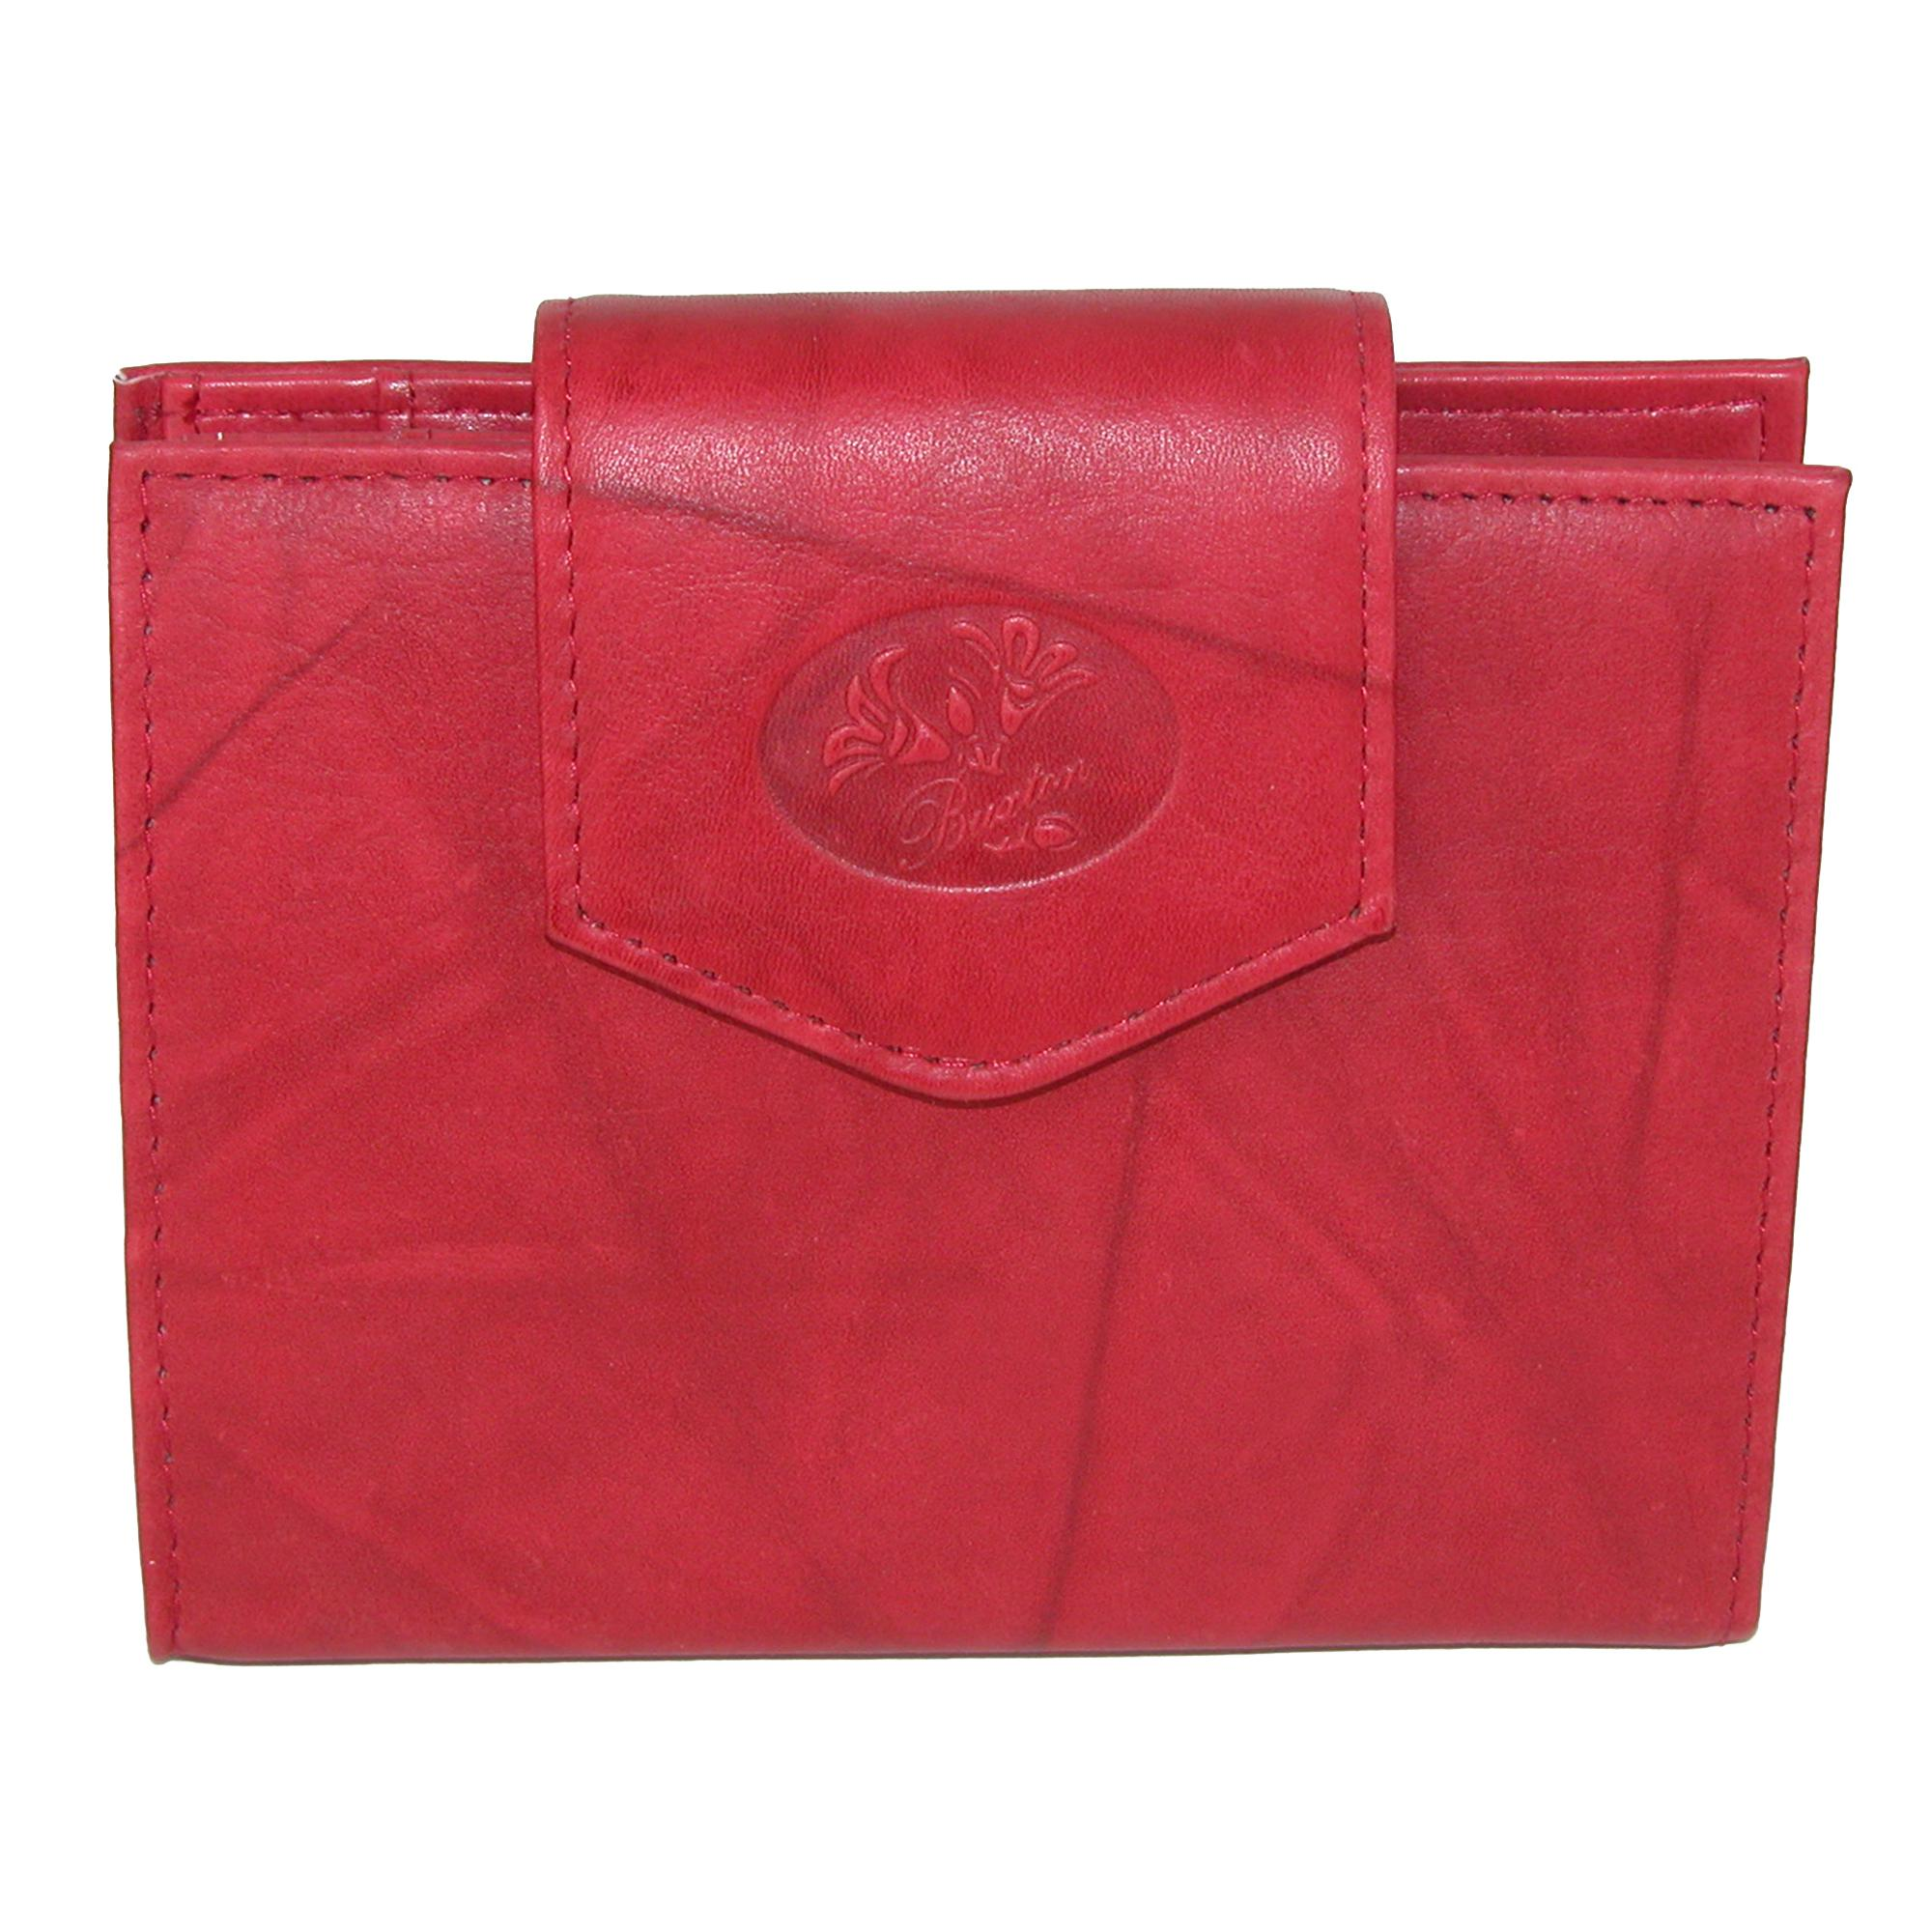 Buxton Women's Leather Attache Clutch Cardex Wallet and Coin Purse - (BX-393-55-RED BX-393-55) photo